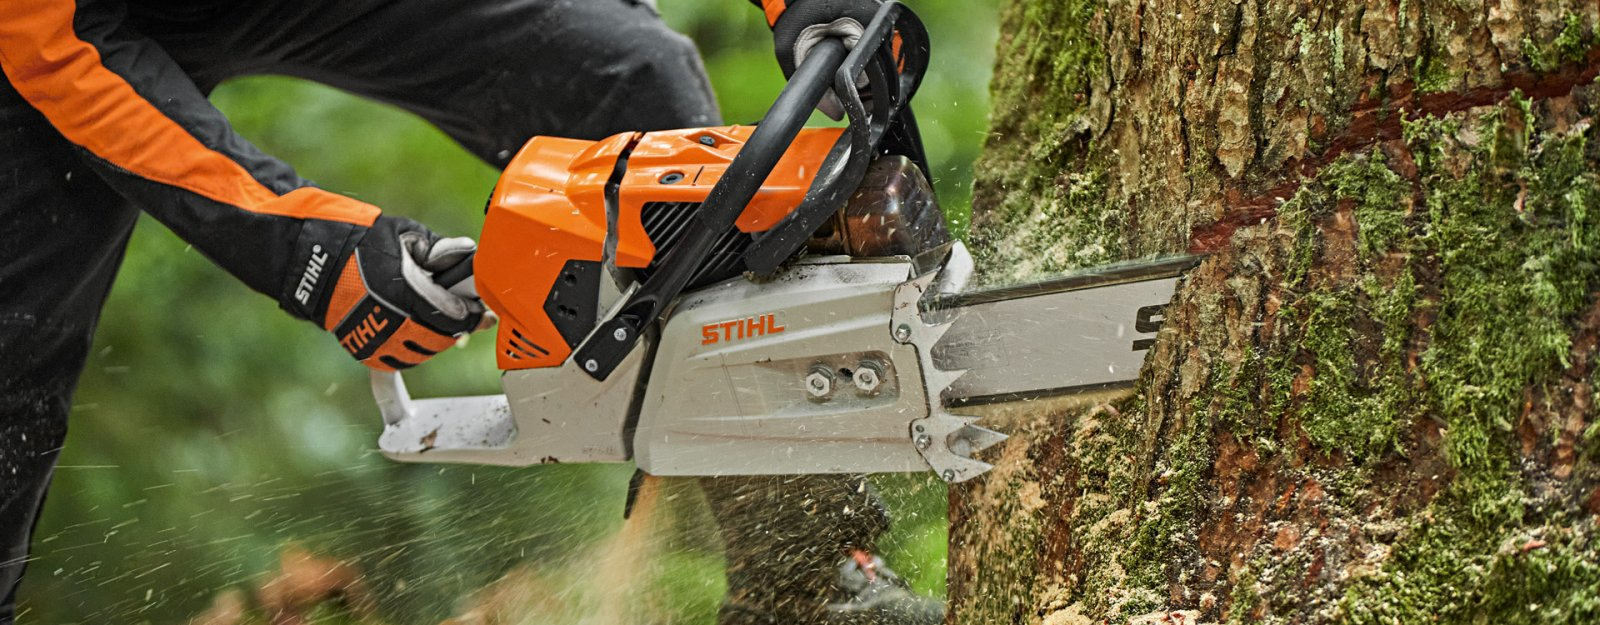 Stihl MS 881 - The world's most powerful production chainsaw